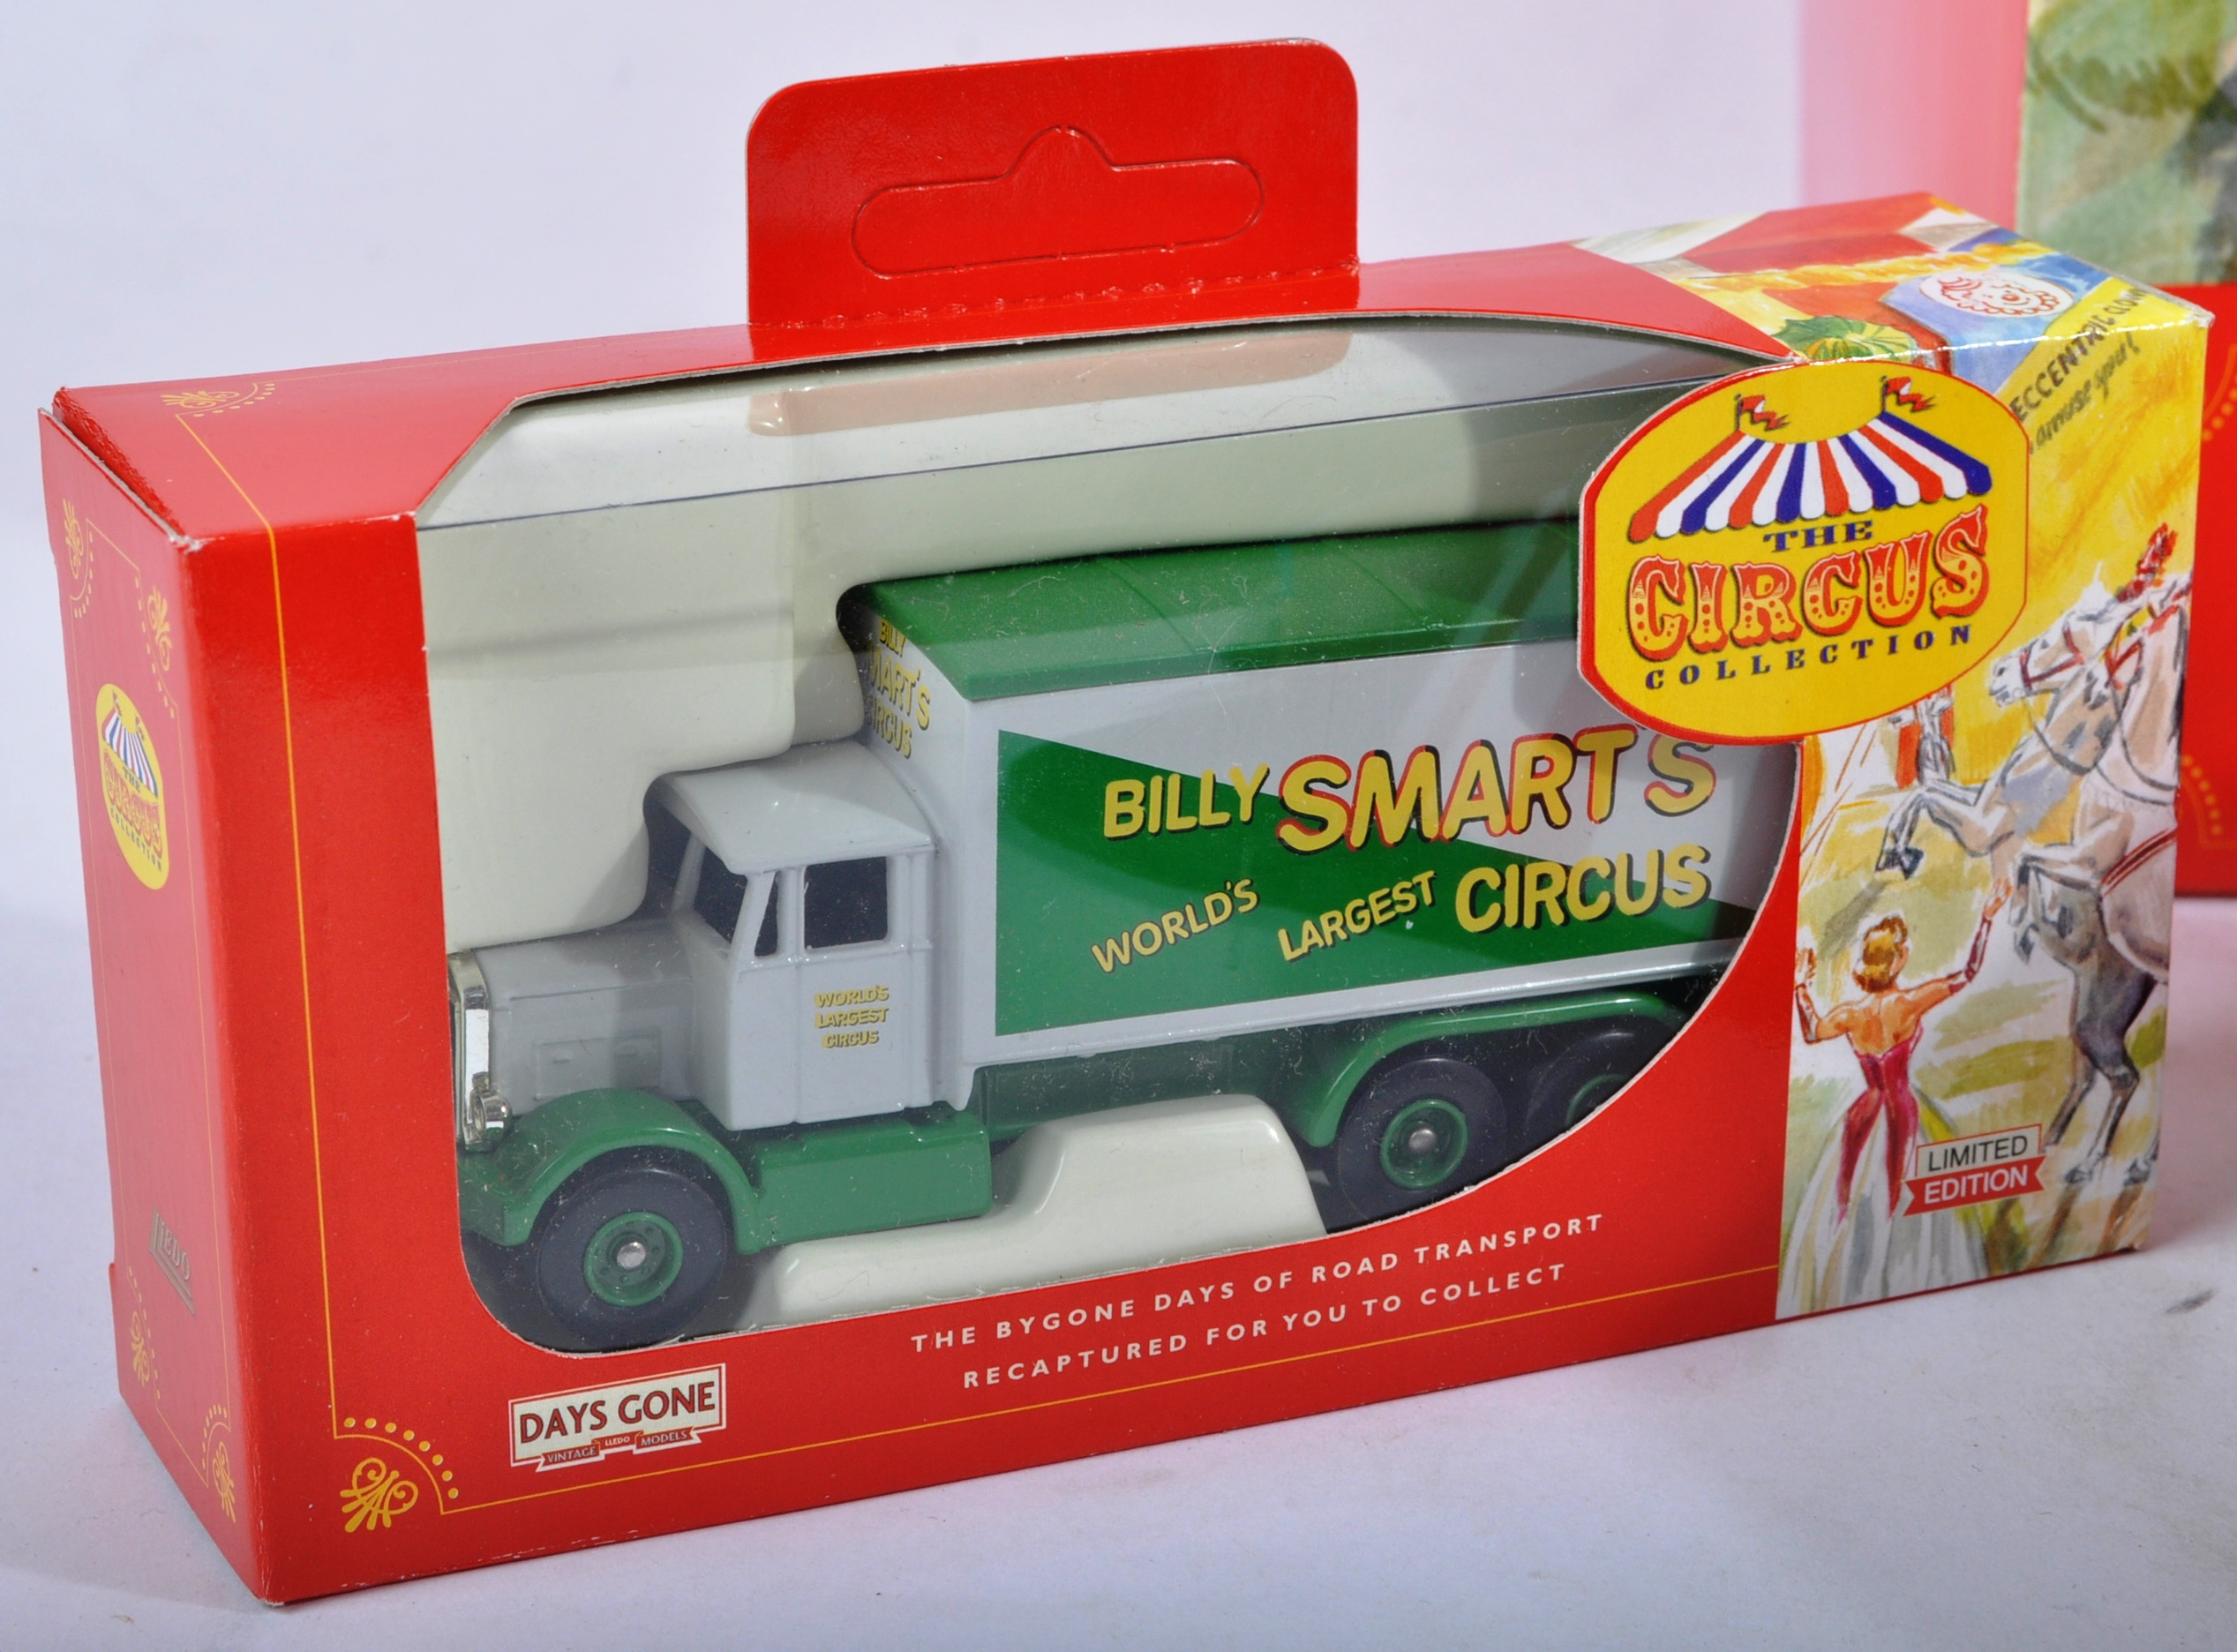 COLLECTION OF LLEDO DAYS GONE BILLY SMARTS CIRCUS DIECAST - Image 4 of 9